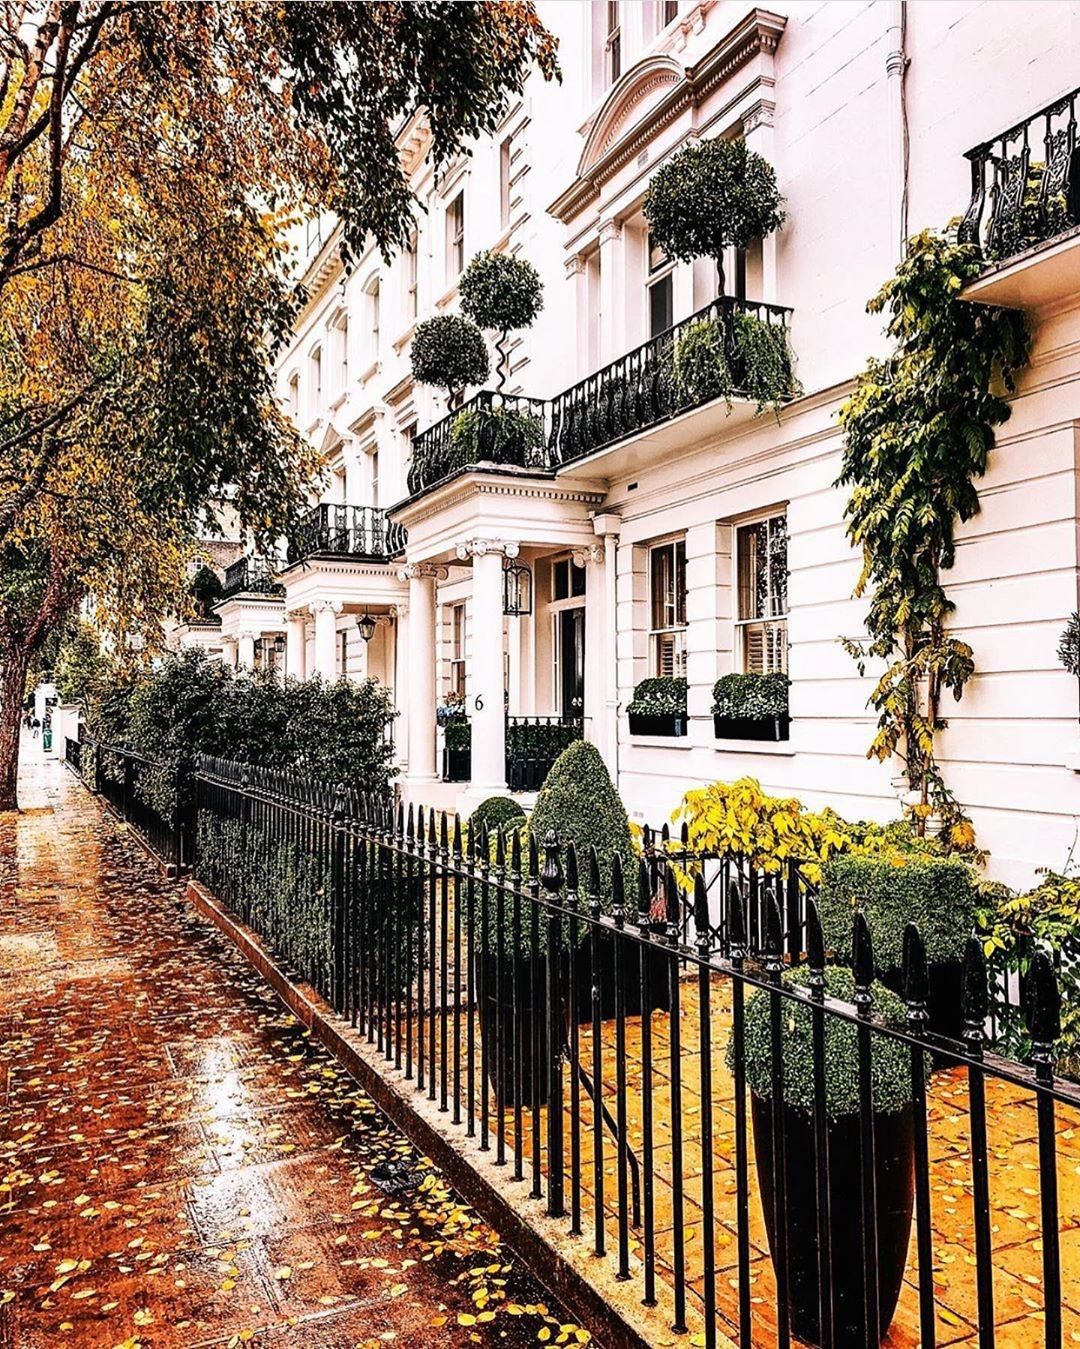 Buying A House In London: Everything You Need To Know